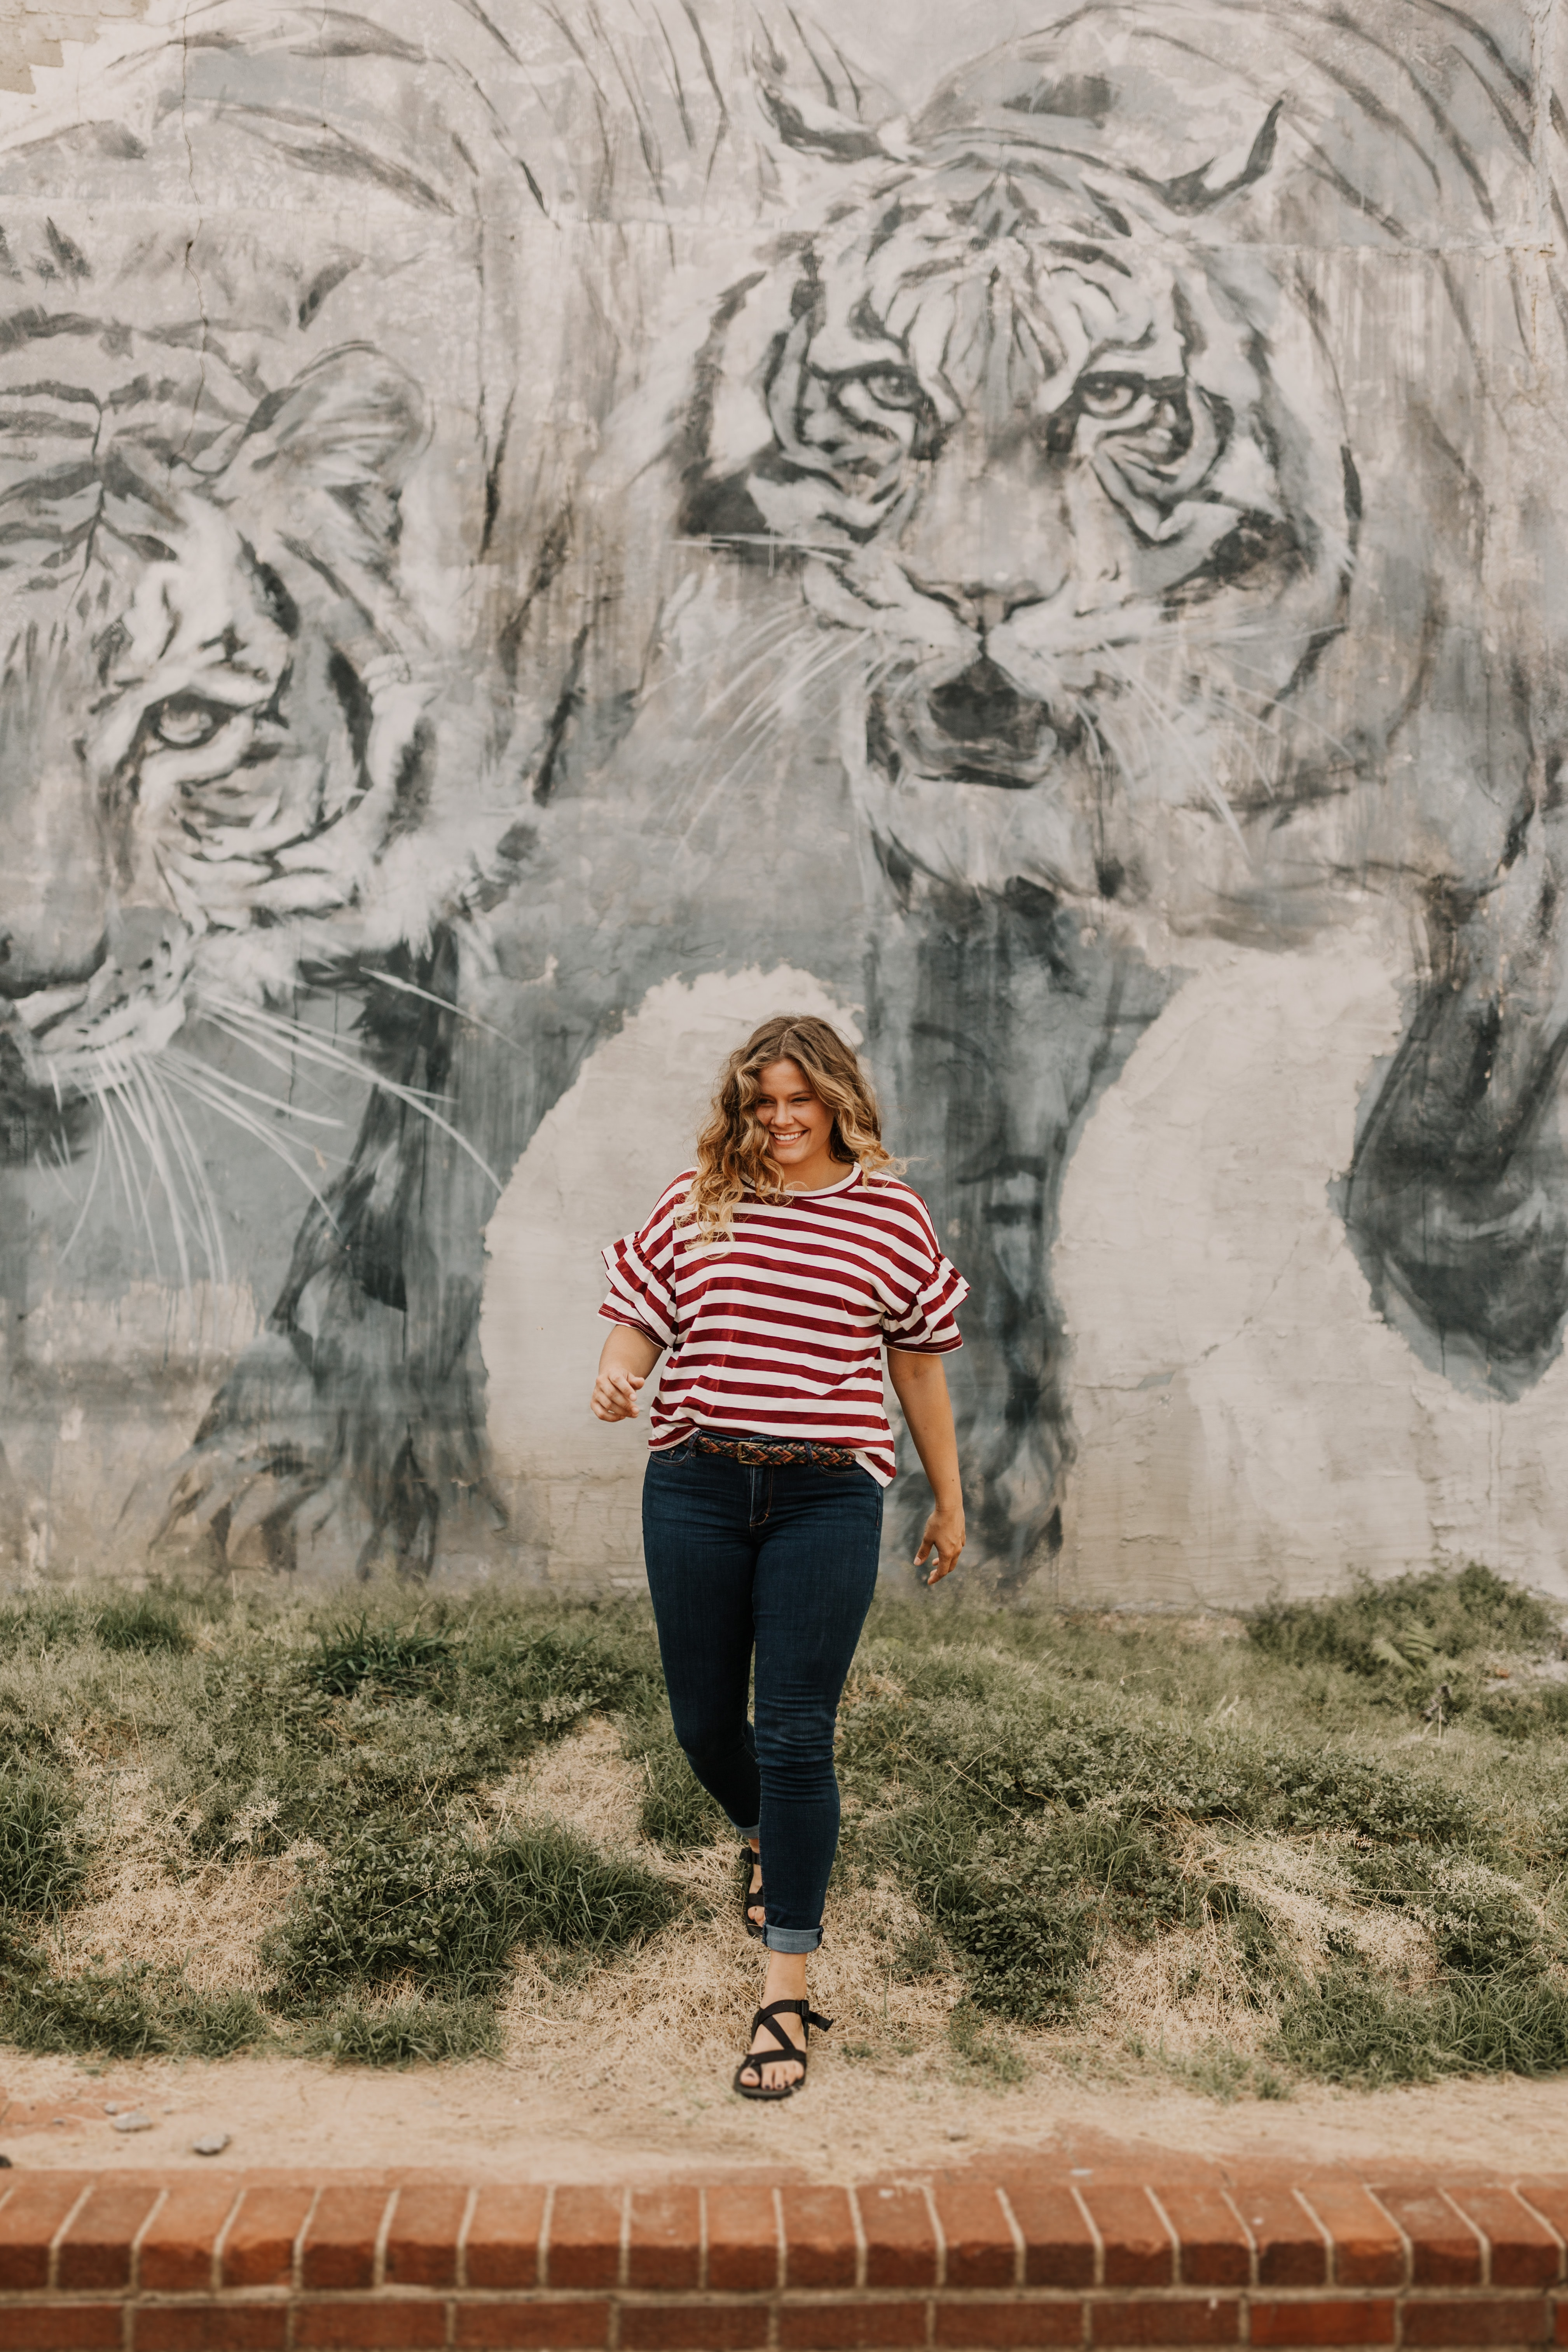 woman in standing beside tiger-printed wall